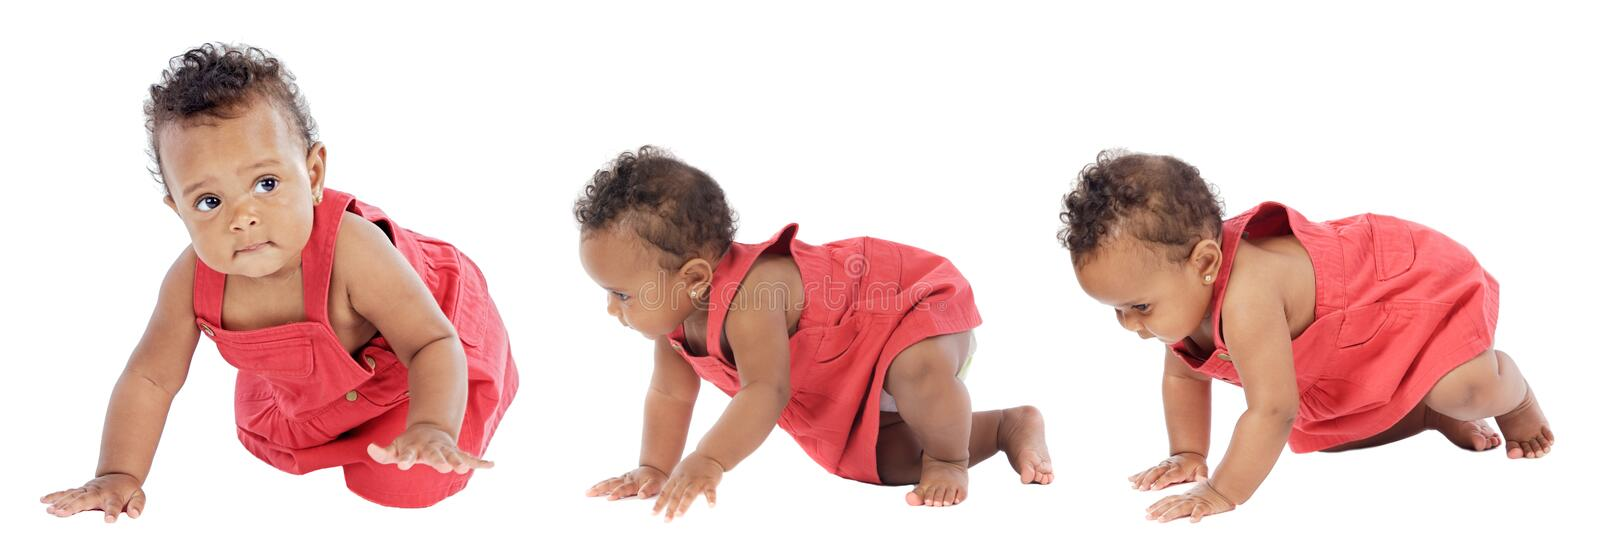 Download Learning to walk stock photo. Image of little, adorable - 4589374